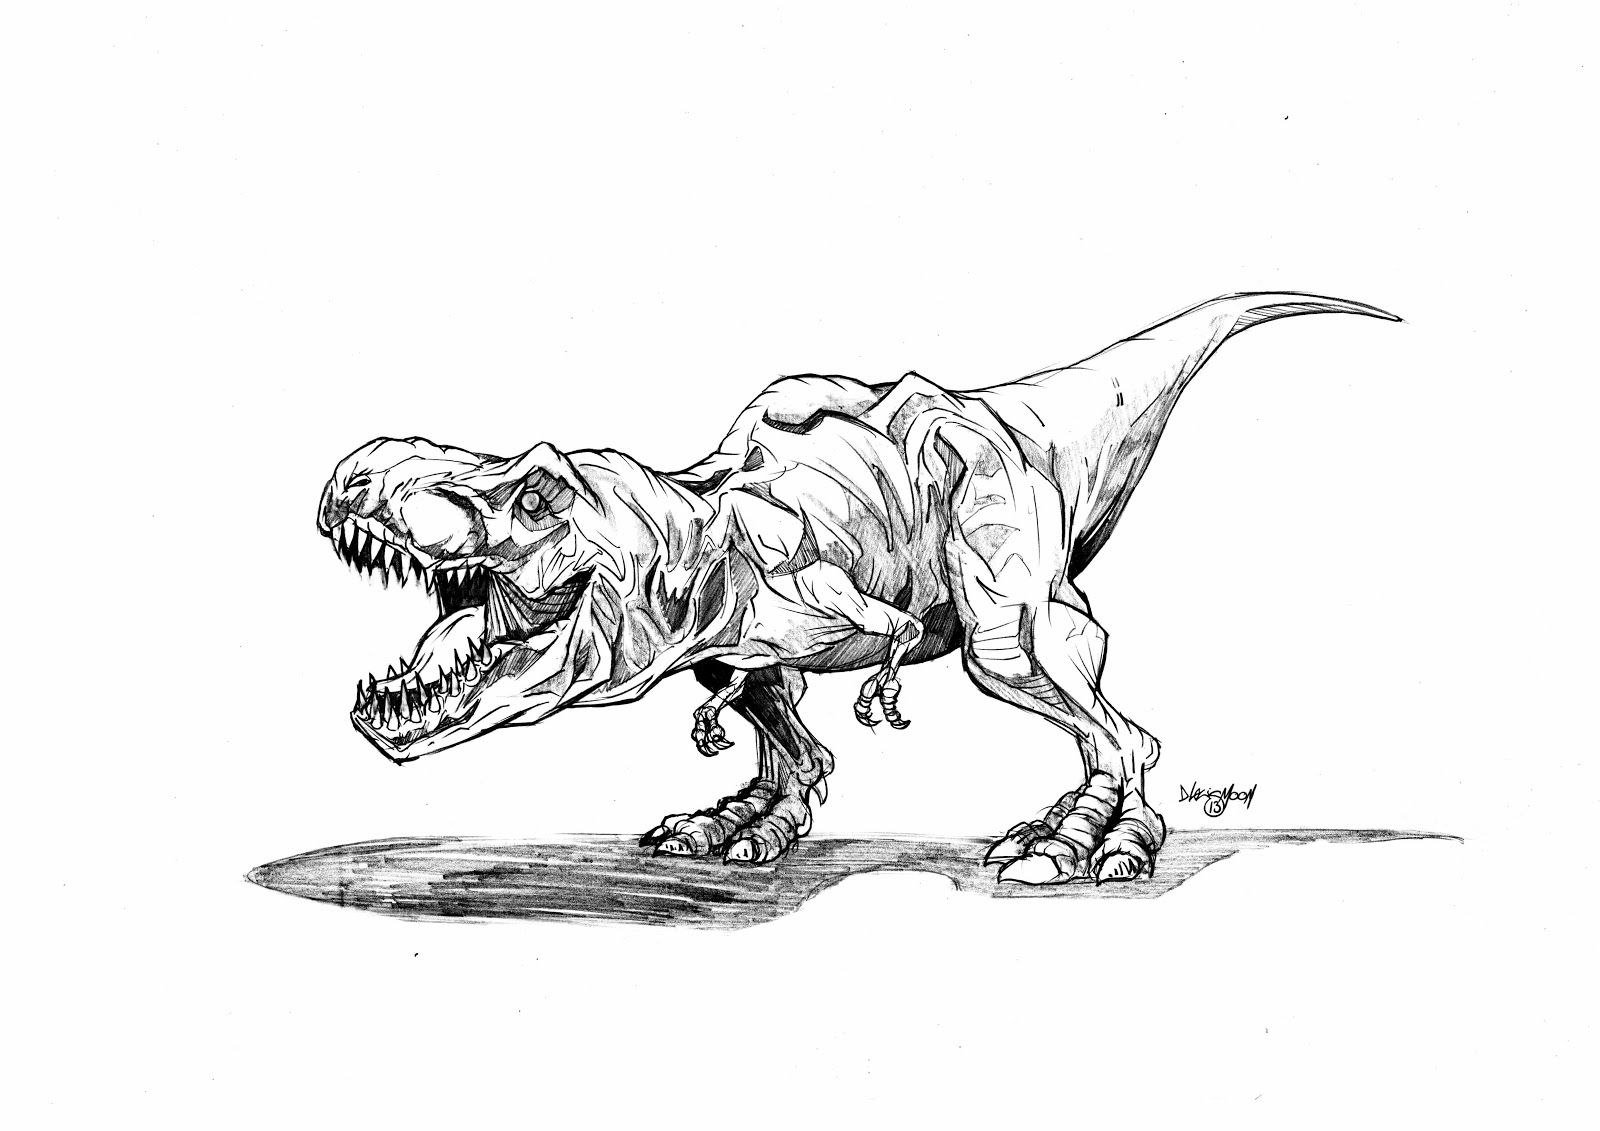 Jurassic Park Coloring Pages (16 Pictures) - Colorine.net | 14637 ...